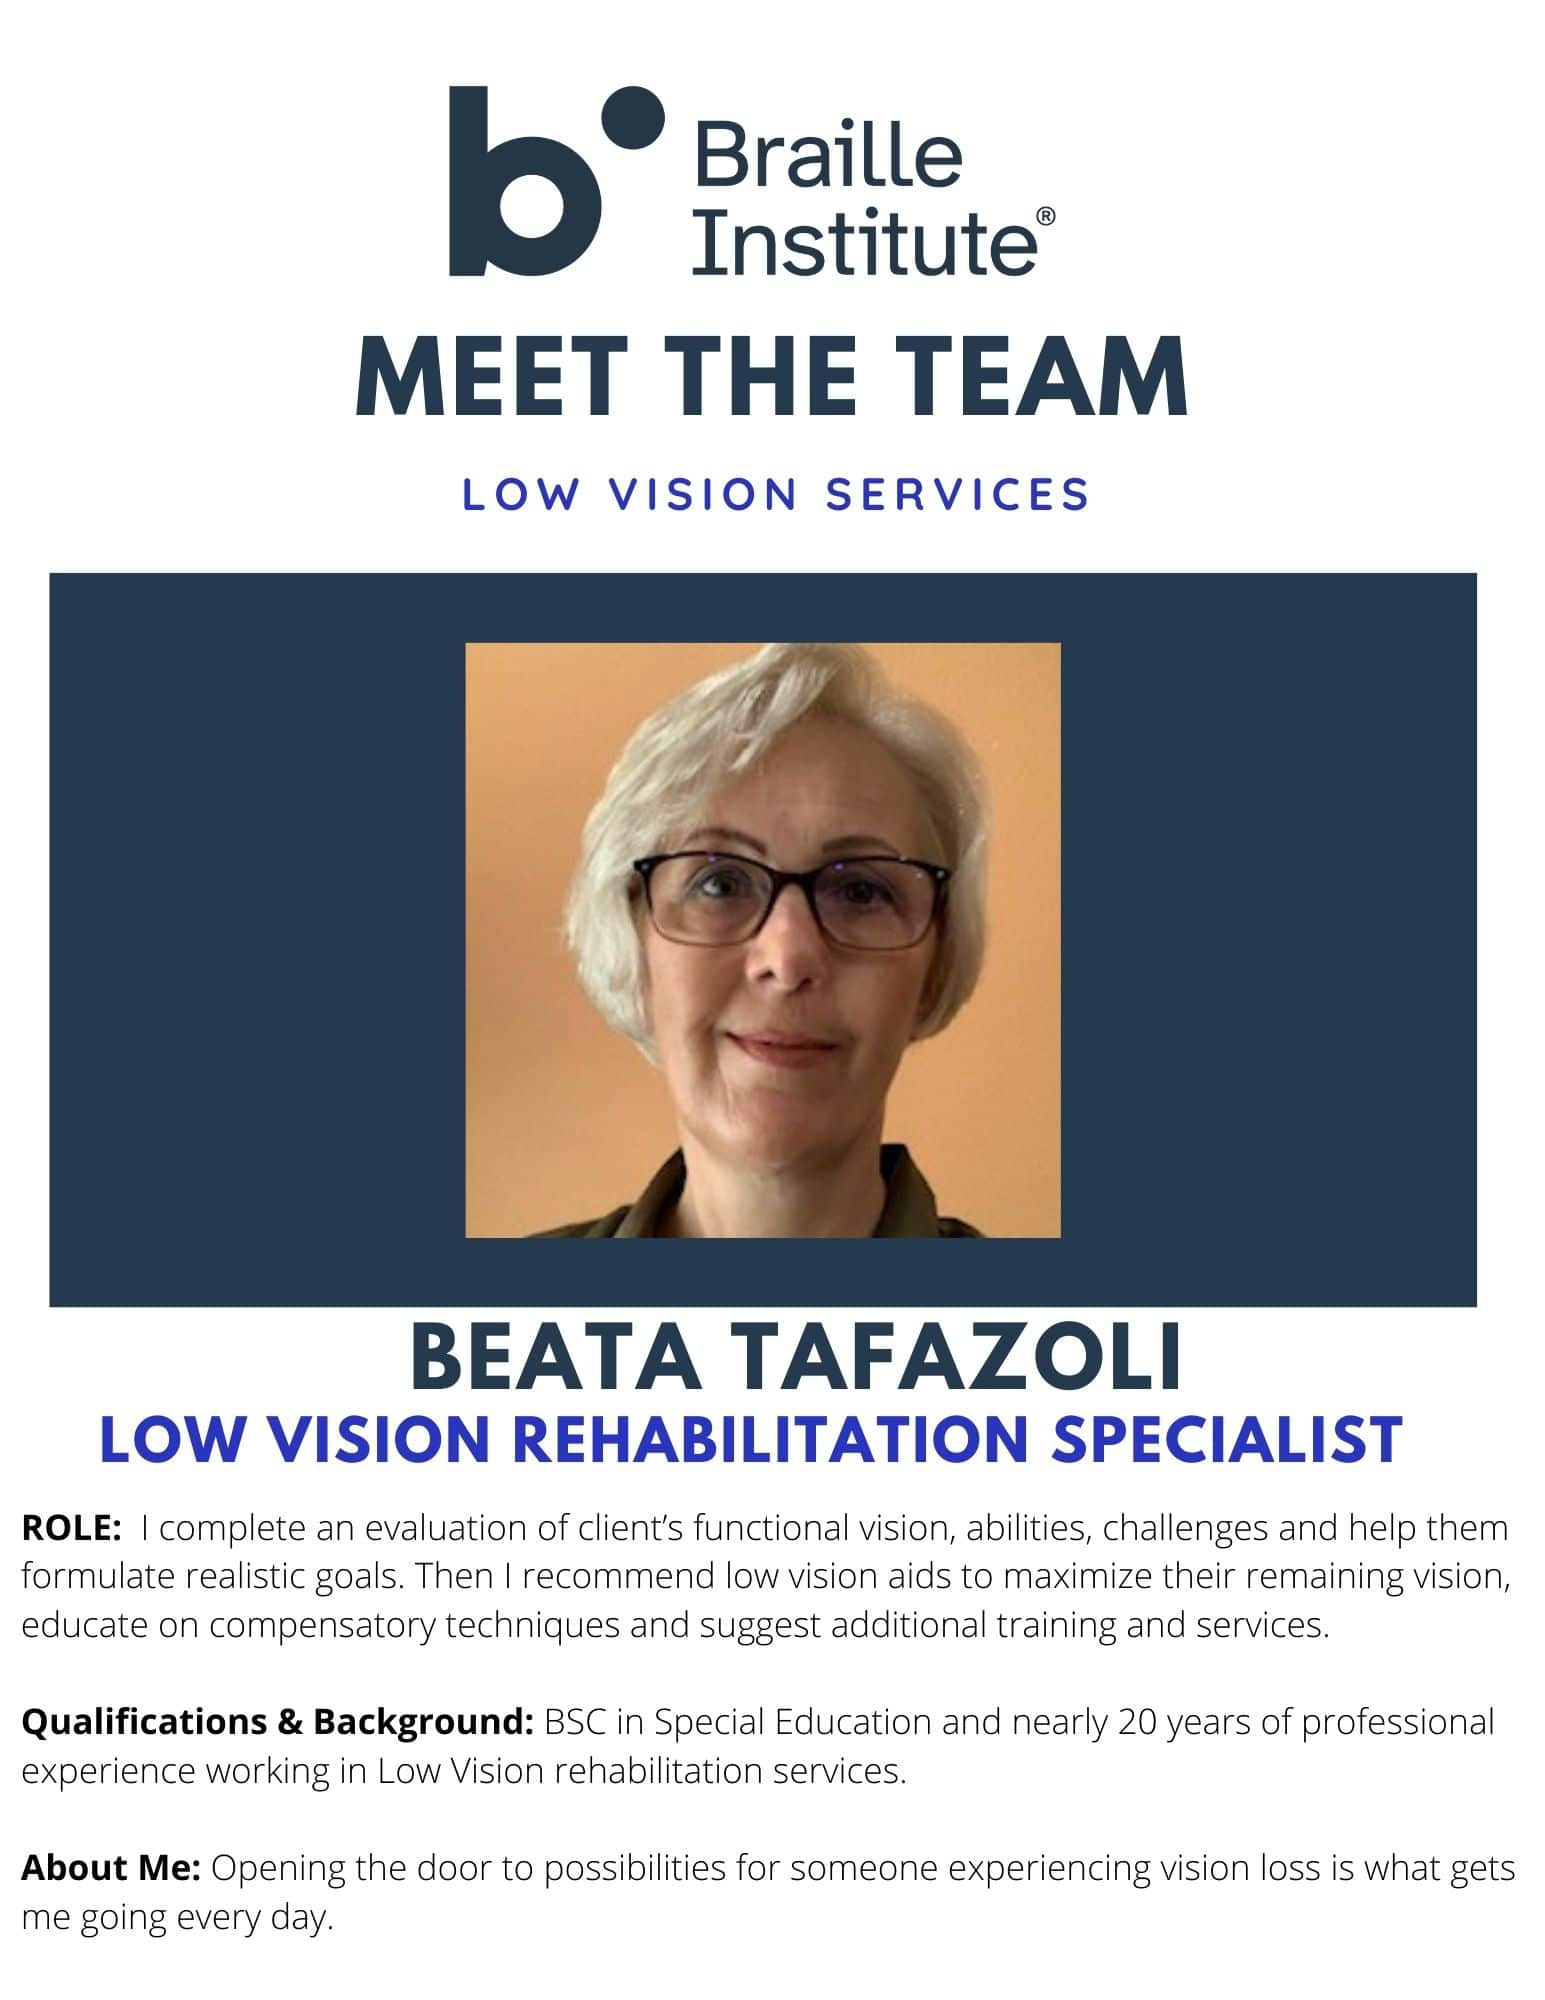 Photo of Braille Institute Low Vision team member Beata Tafazoli